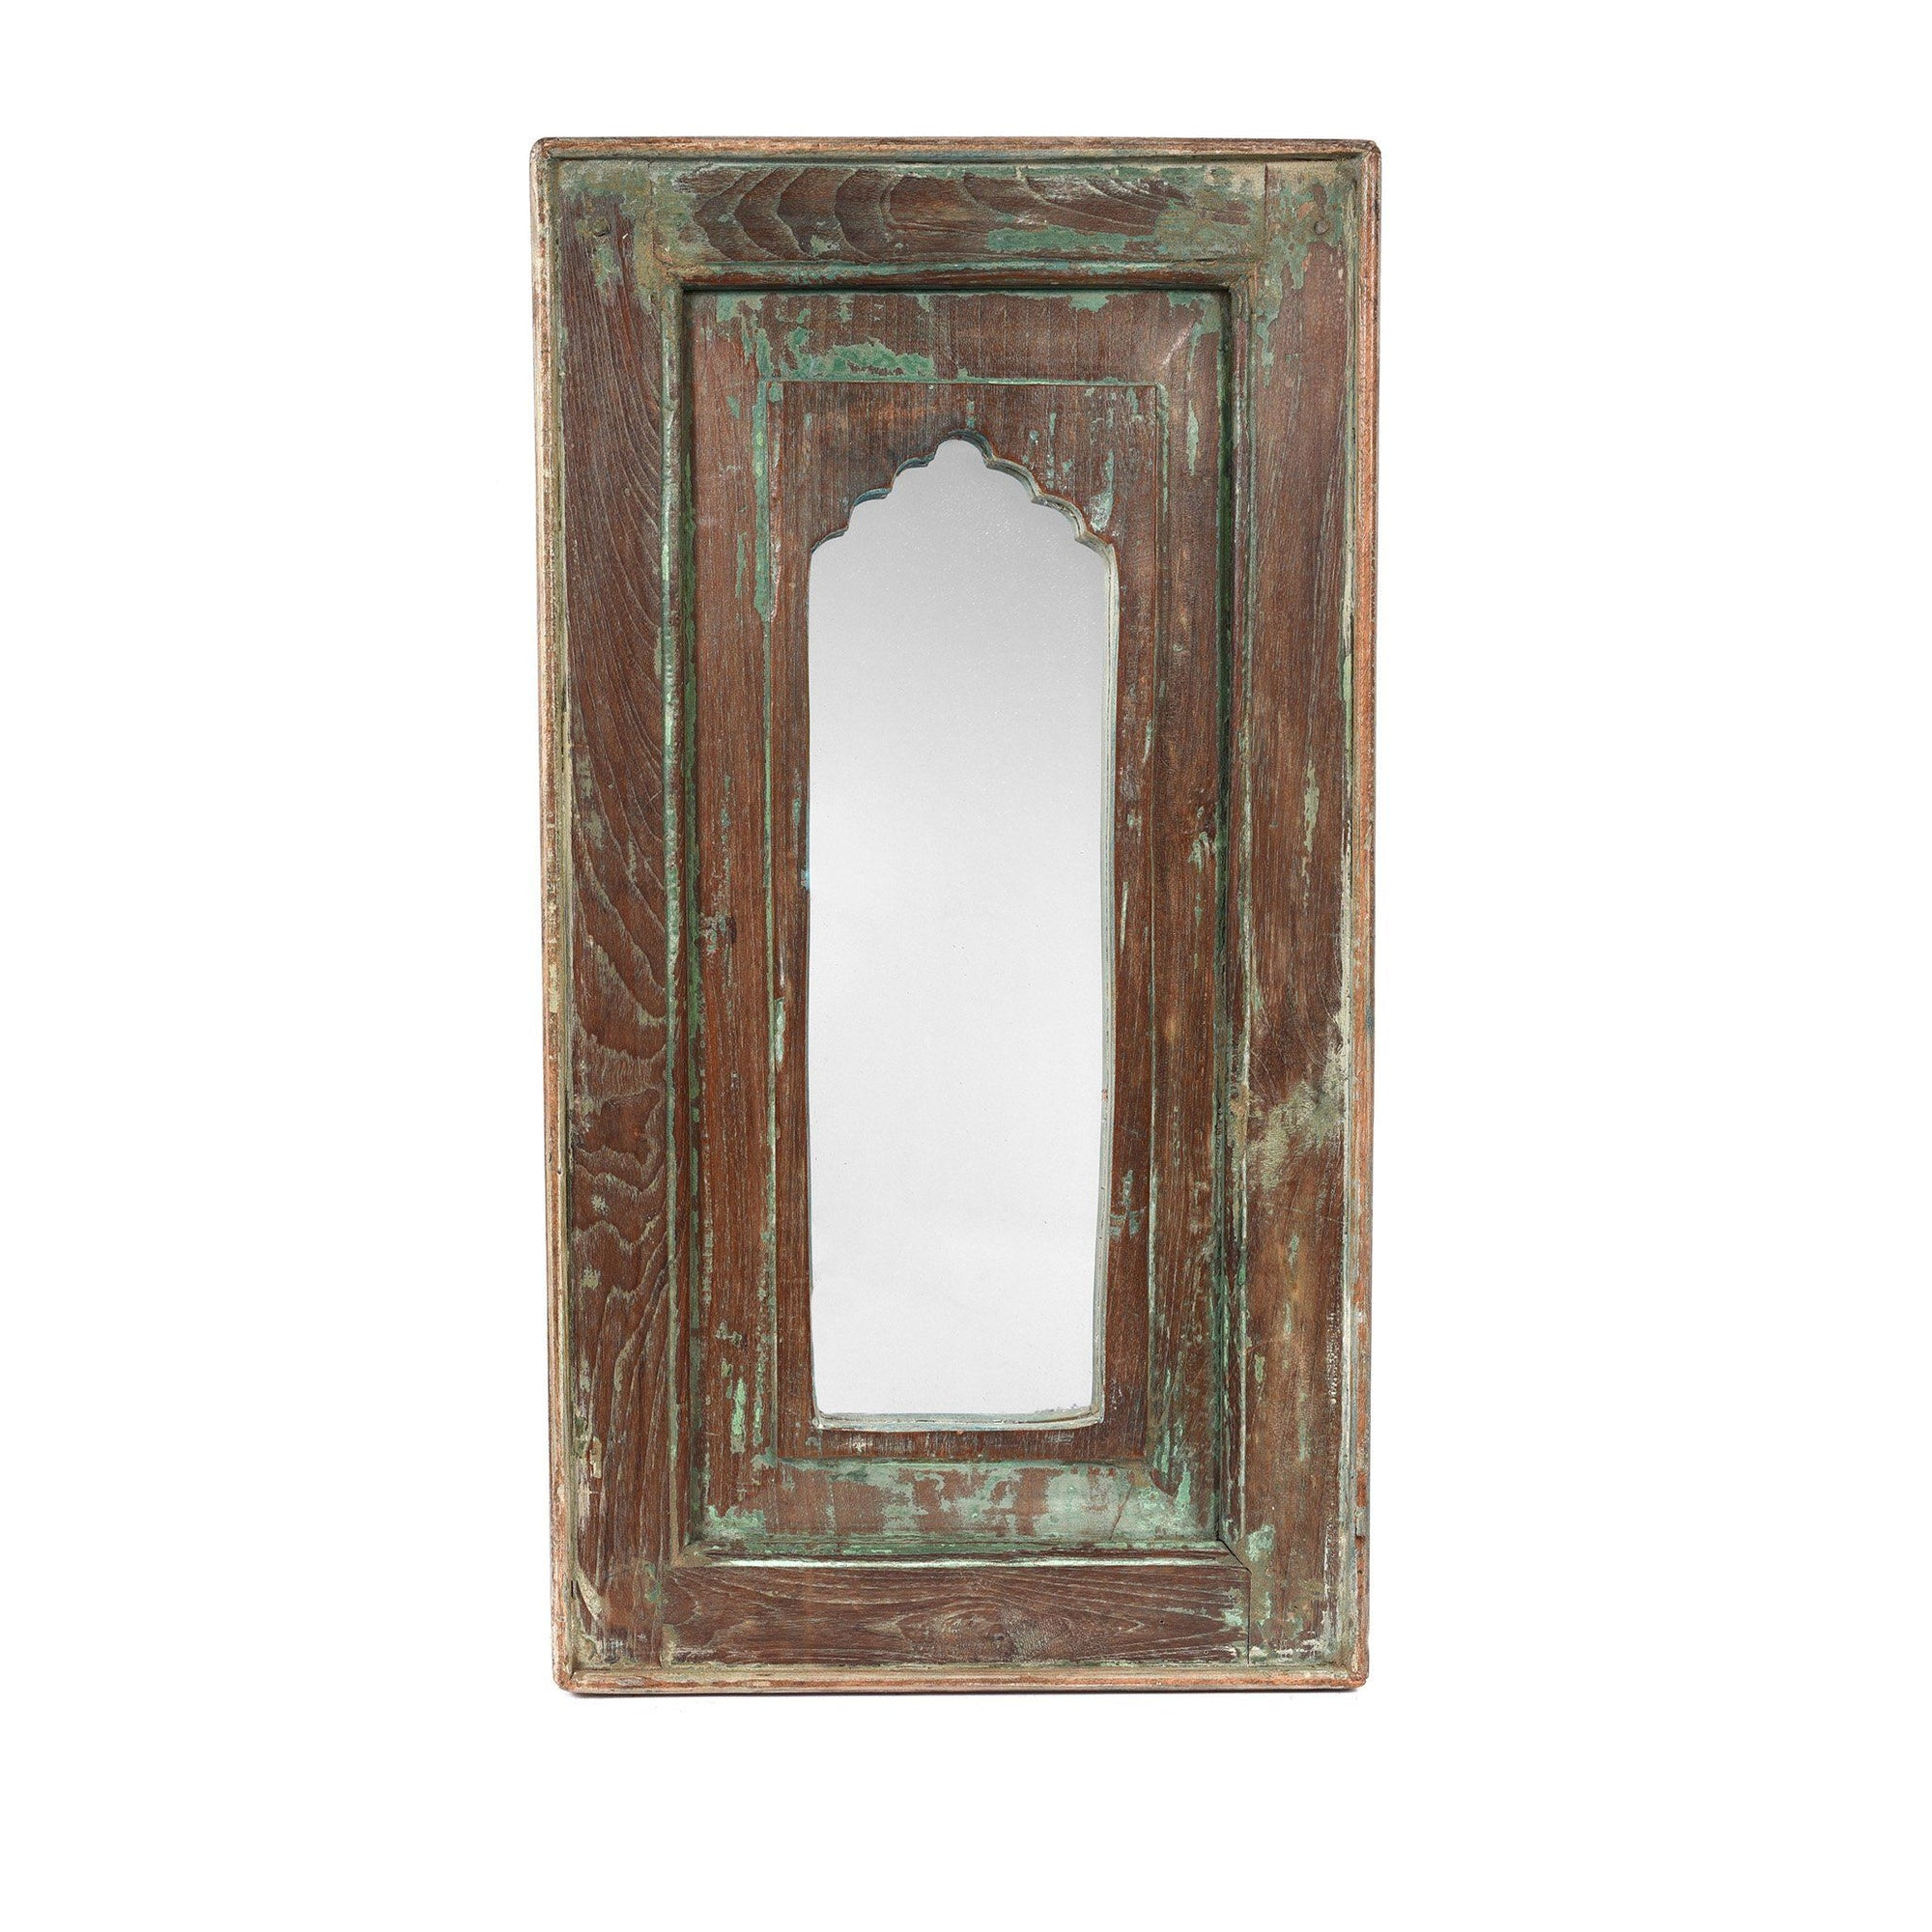 Small Vintage Green Indian Mihrab Mirror Made From Old Teak Wood | Indigo Antiques